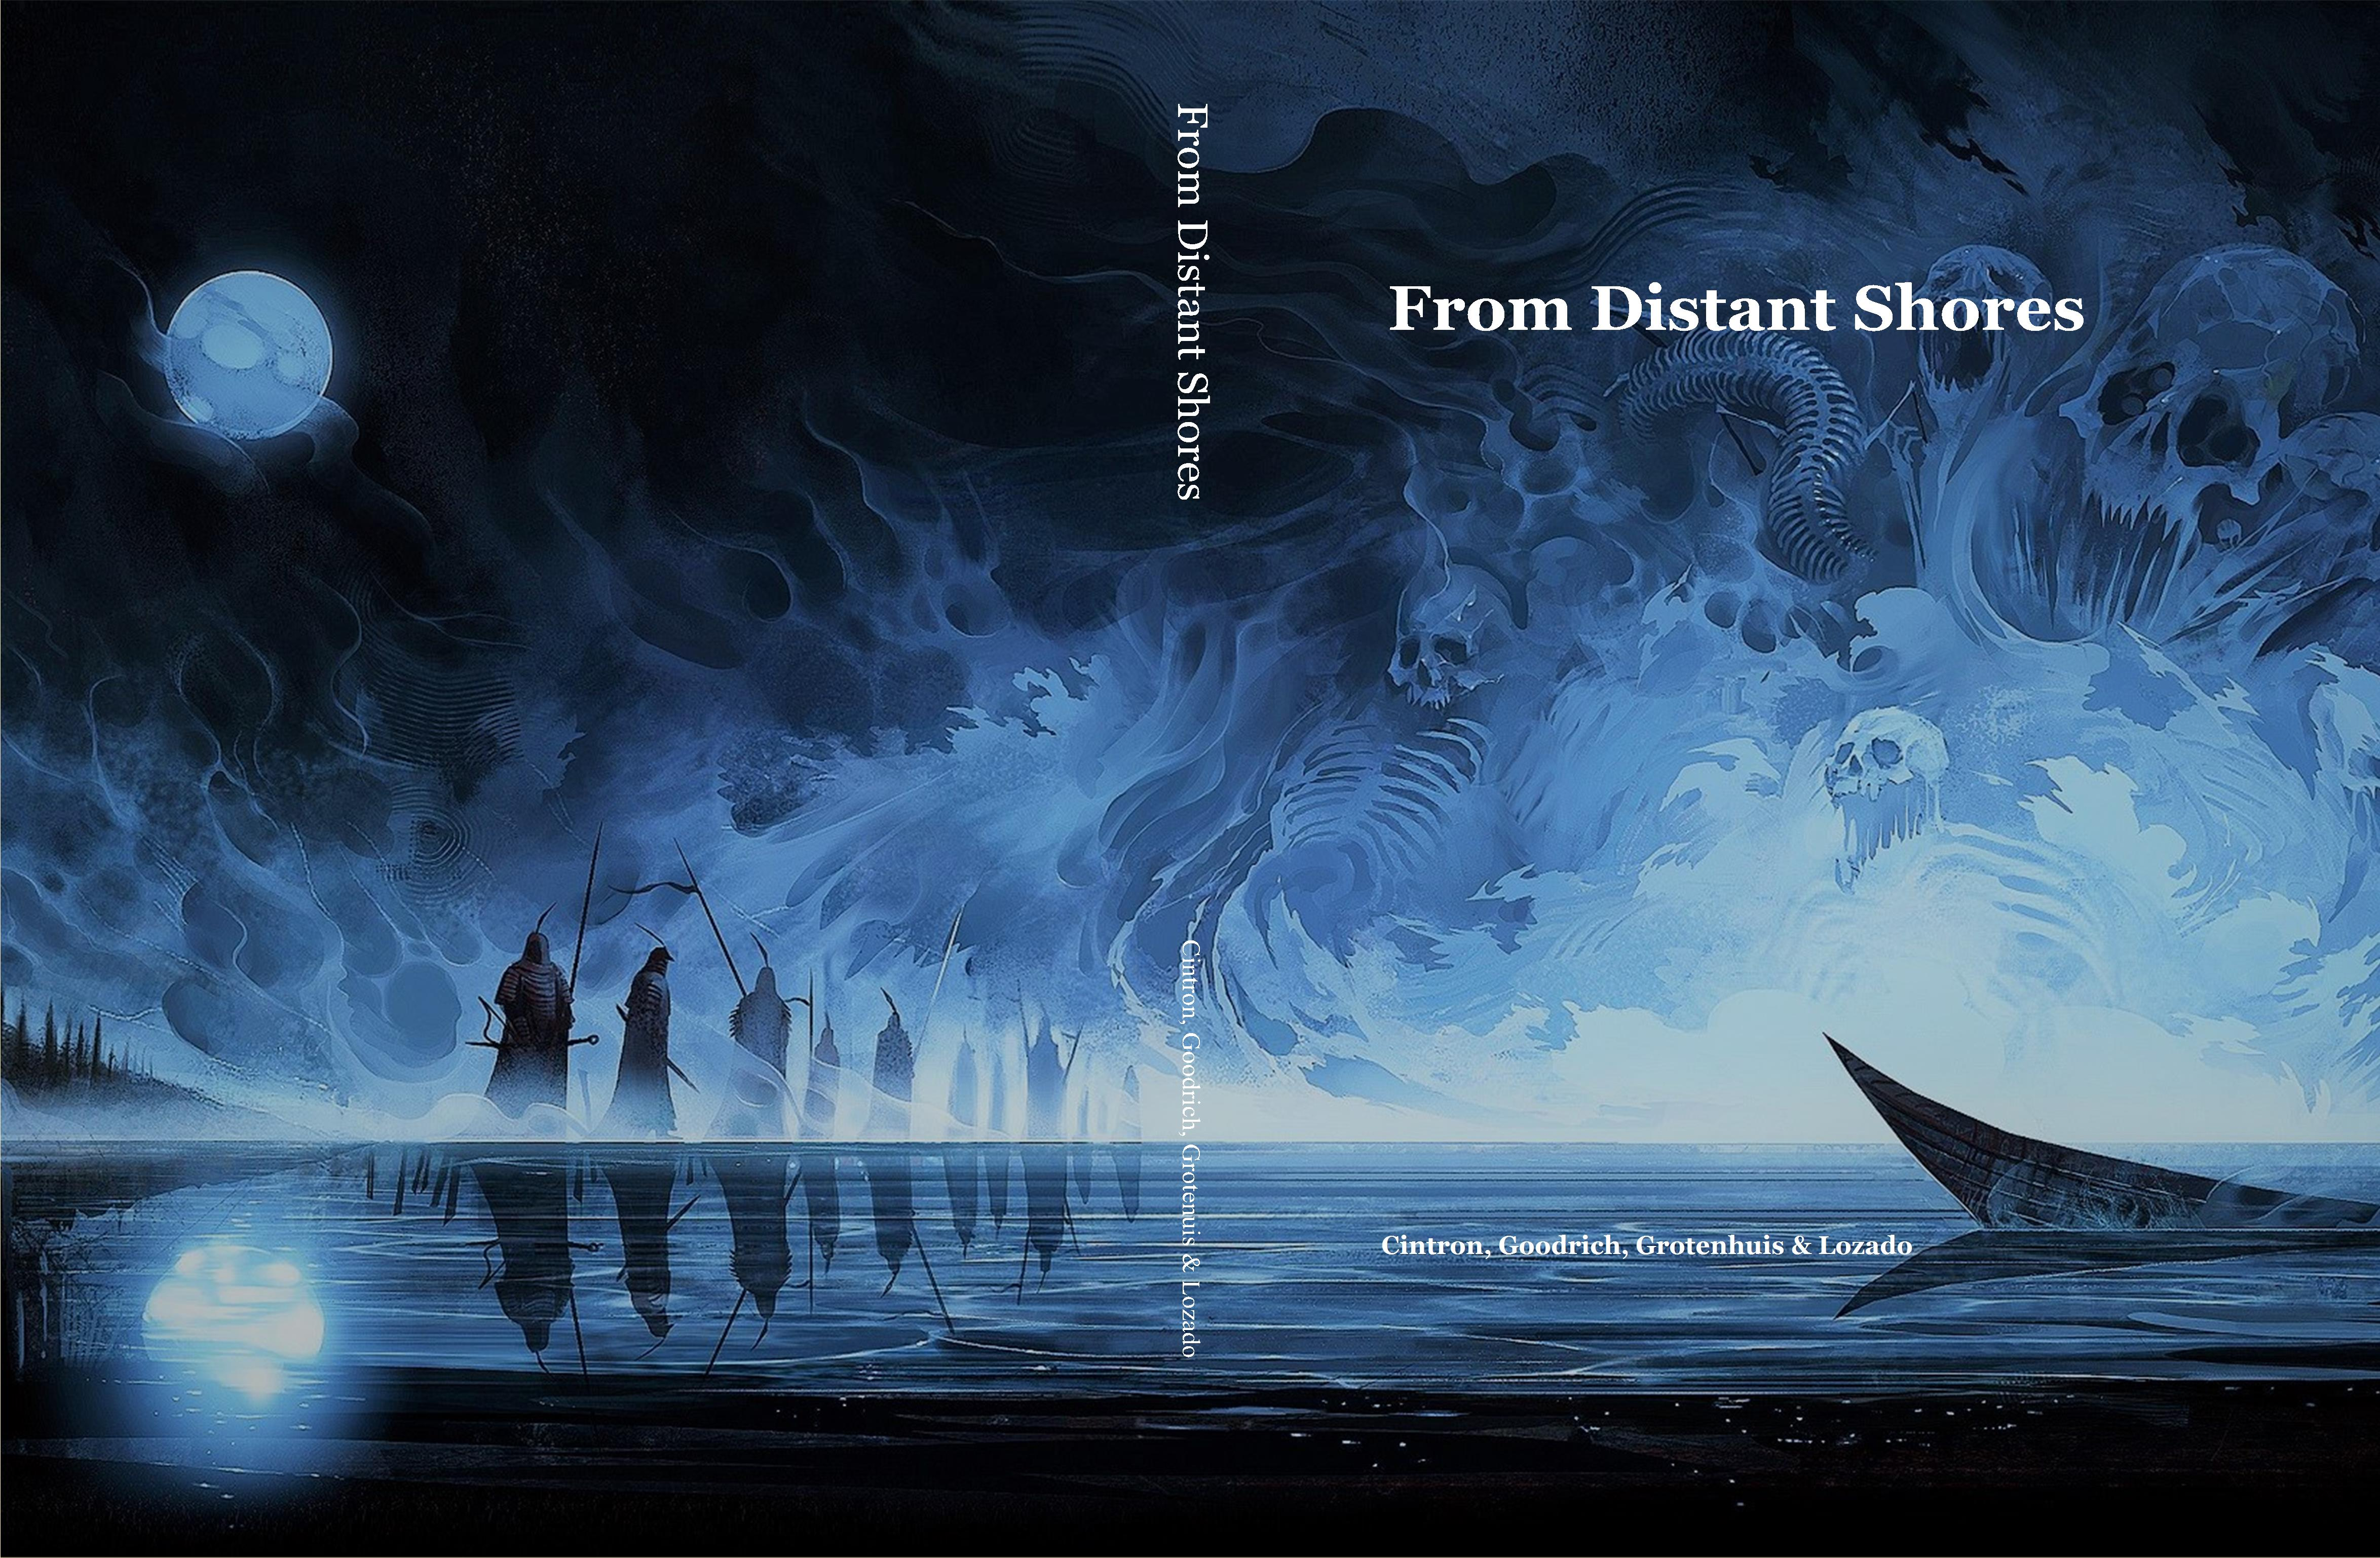 From Distant Shores cover image